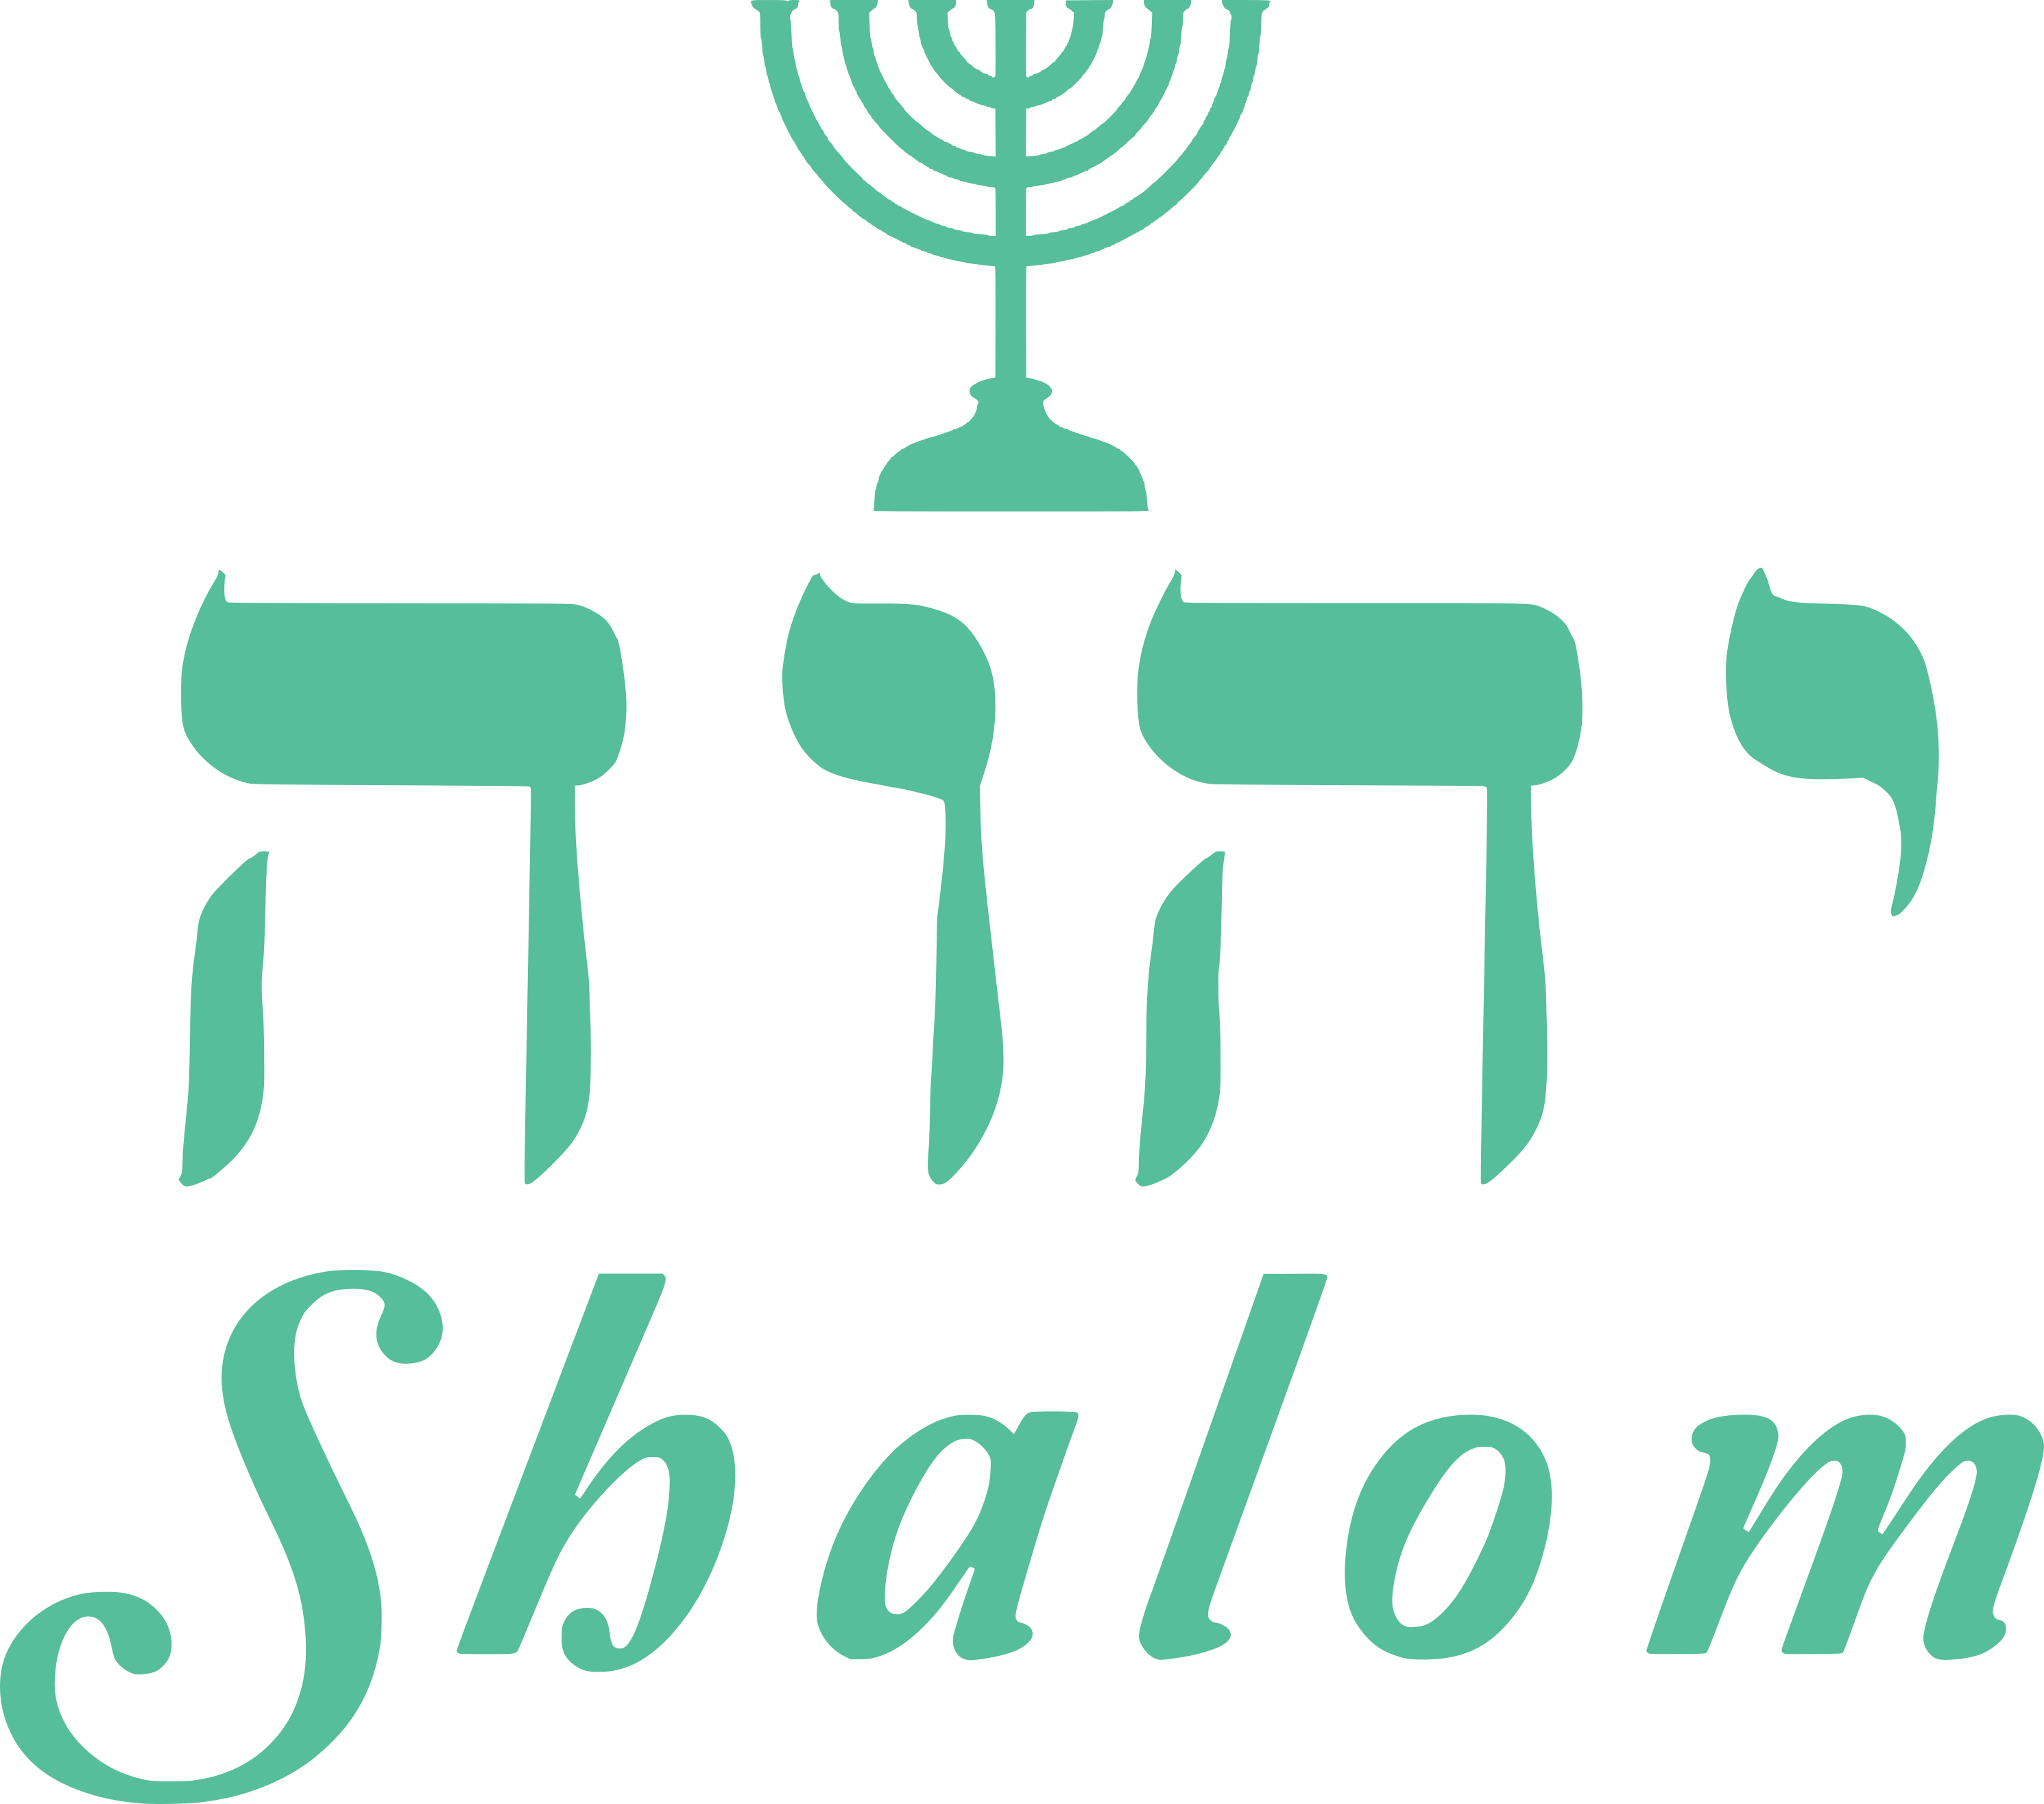 Menorah Clip Art Images >> Menorah, YHVH, Shalom indoor stickers 3 pack variety of colors to choose